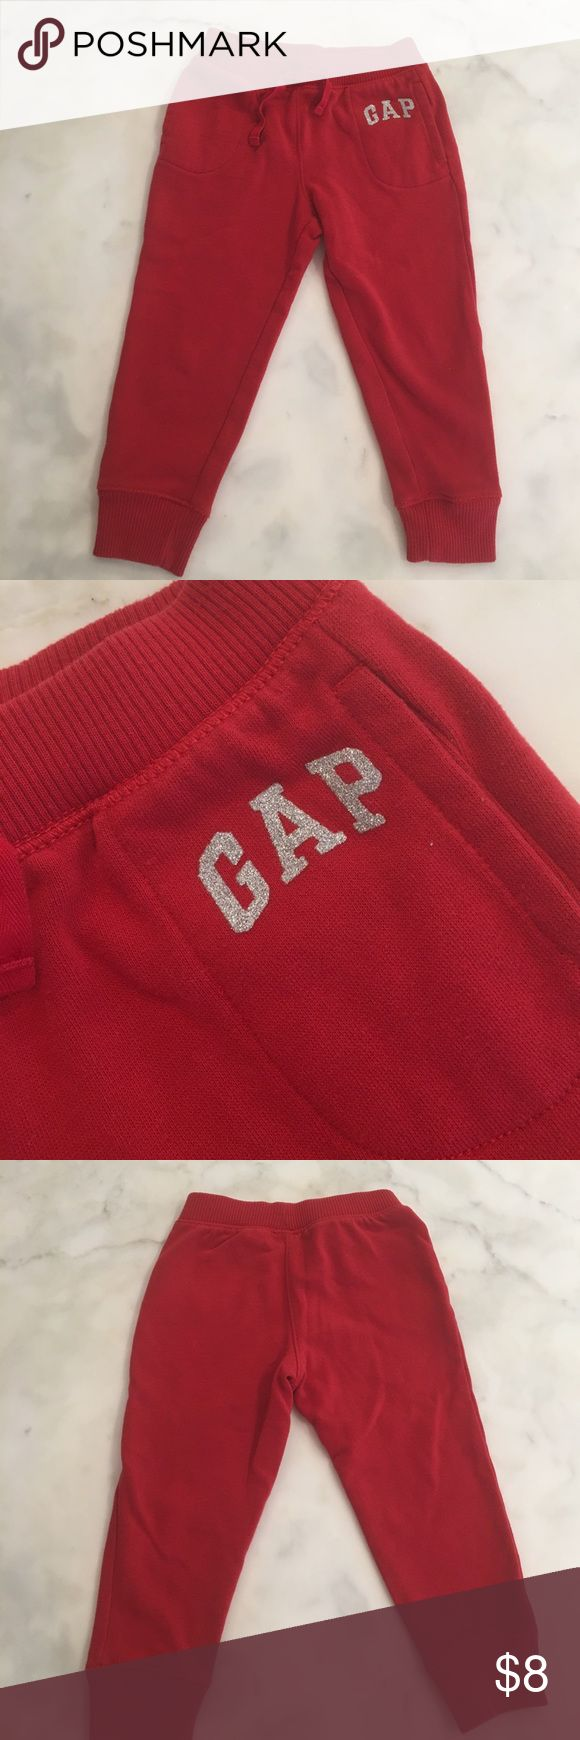 BabyGap red Joggers with glitter logo. Sz 3 BabyGap bright red Joggers with silver sparkly logo on pocket. These are soooo soft inside. Sz 3. Great condition. babygap Bottoms Sweatpants & Joggers